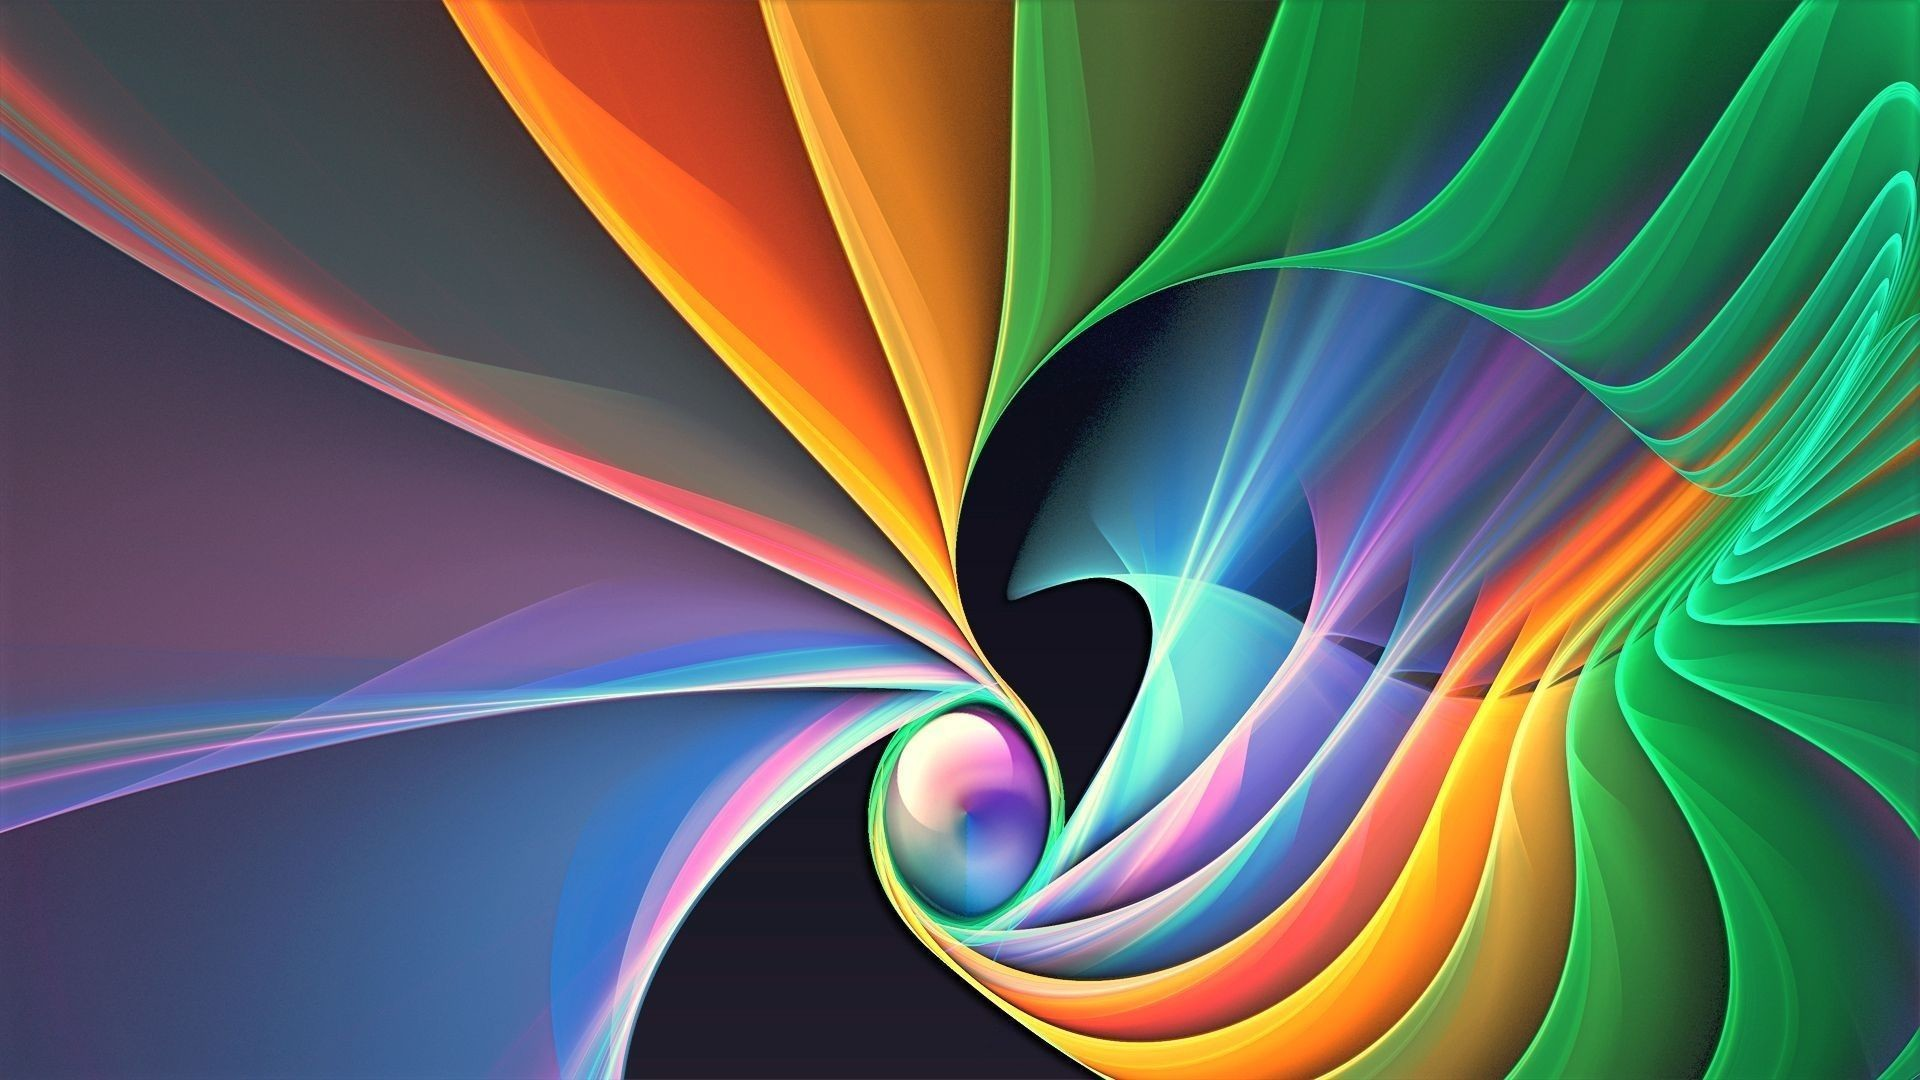 1920x1080 colorful wallpaper: Bright Colored Backgrounds (66+ Images